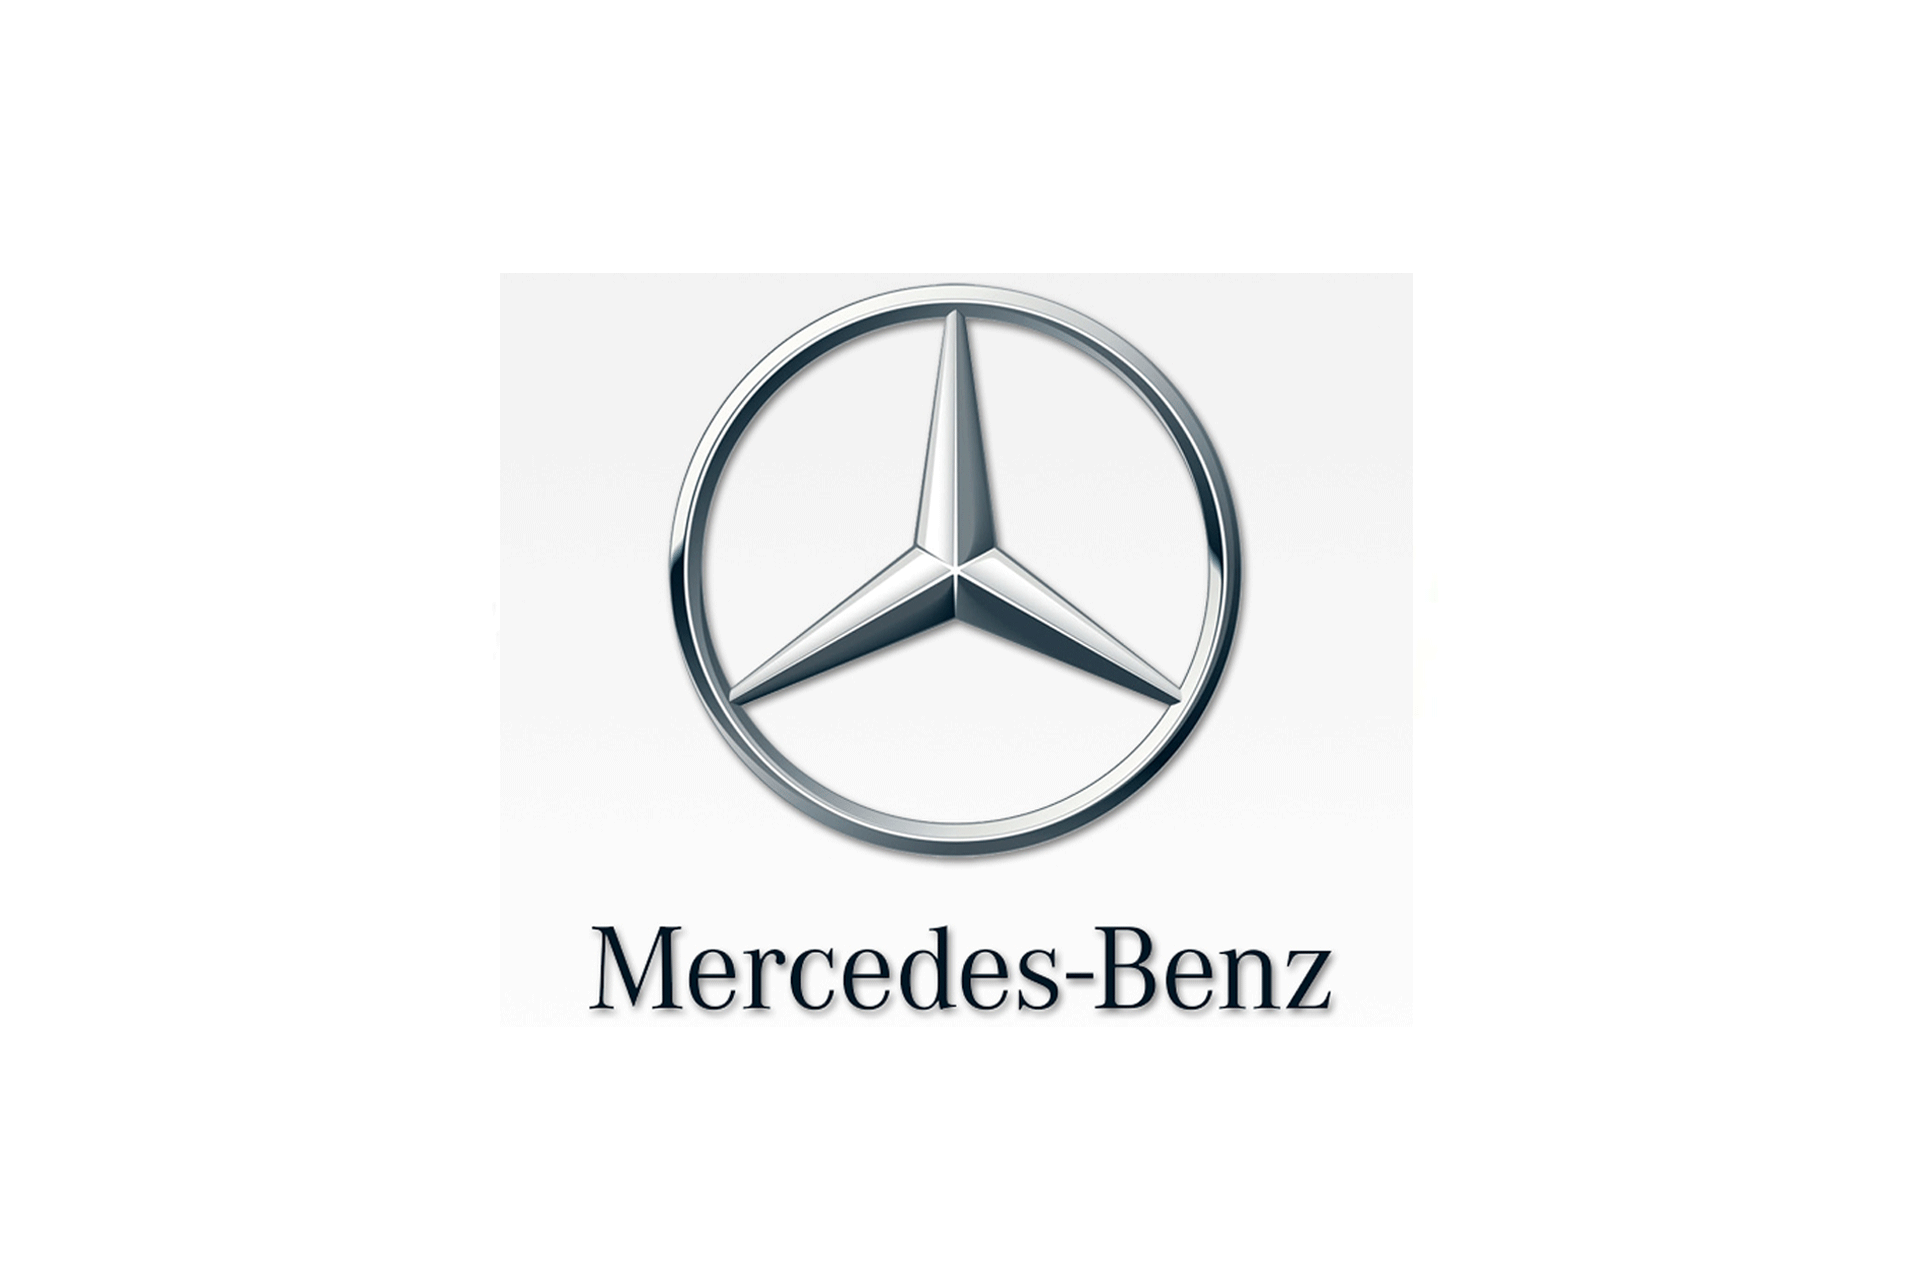 00 06 mercedes w220 s430 cl500 s500 s600 s55 right side for Mercedes benz emblem